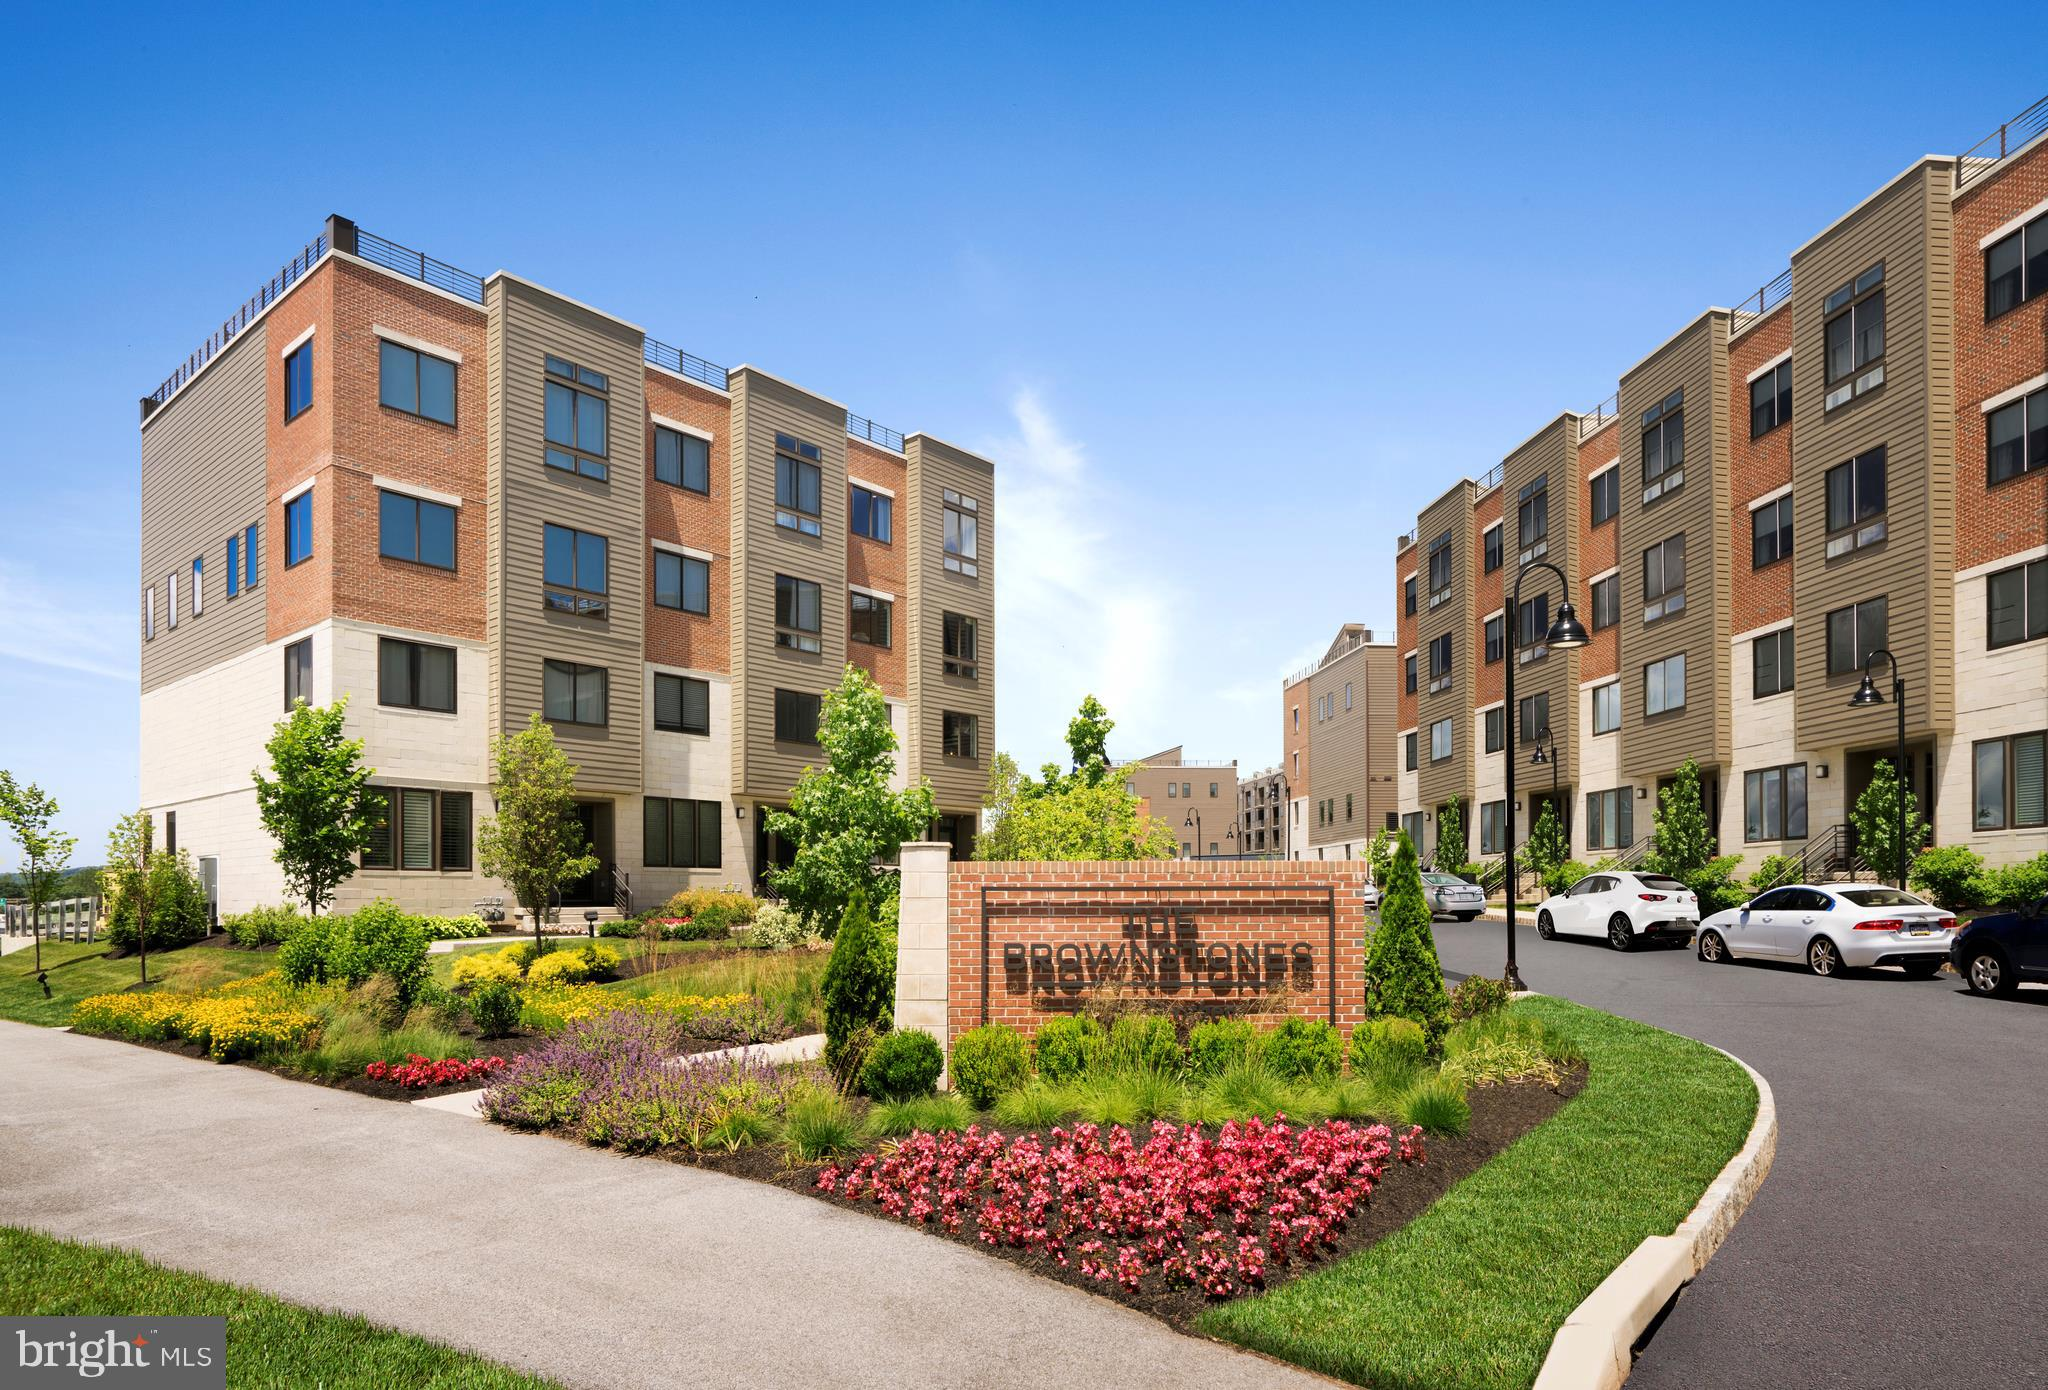 100 LAKEVIEW COURT 100, KING OF PRUSSIA, PA 19406